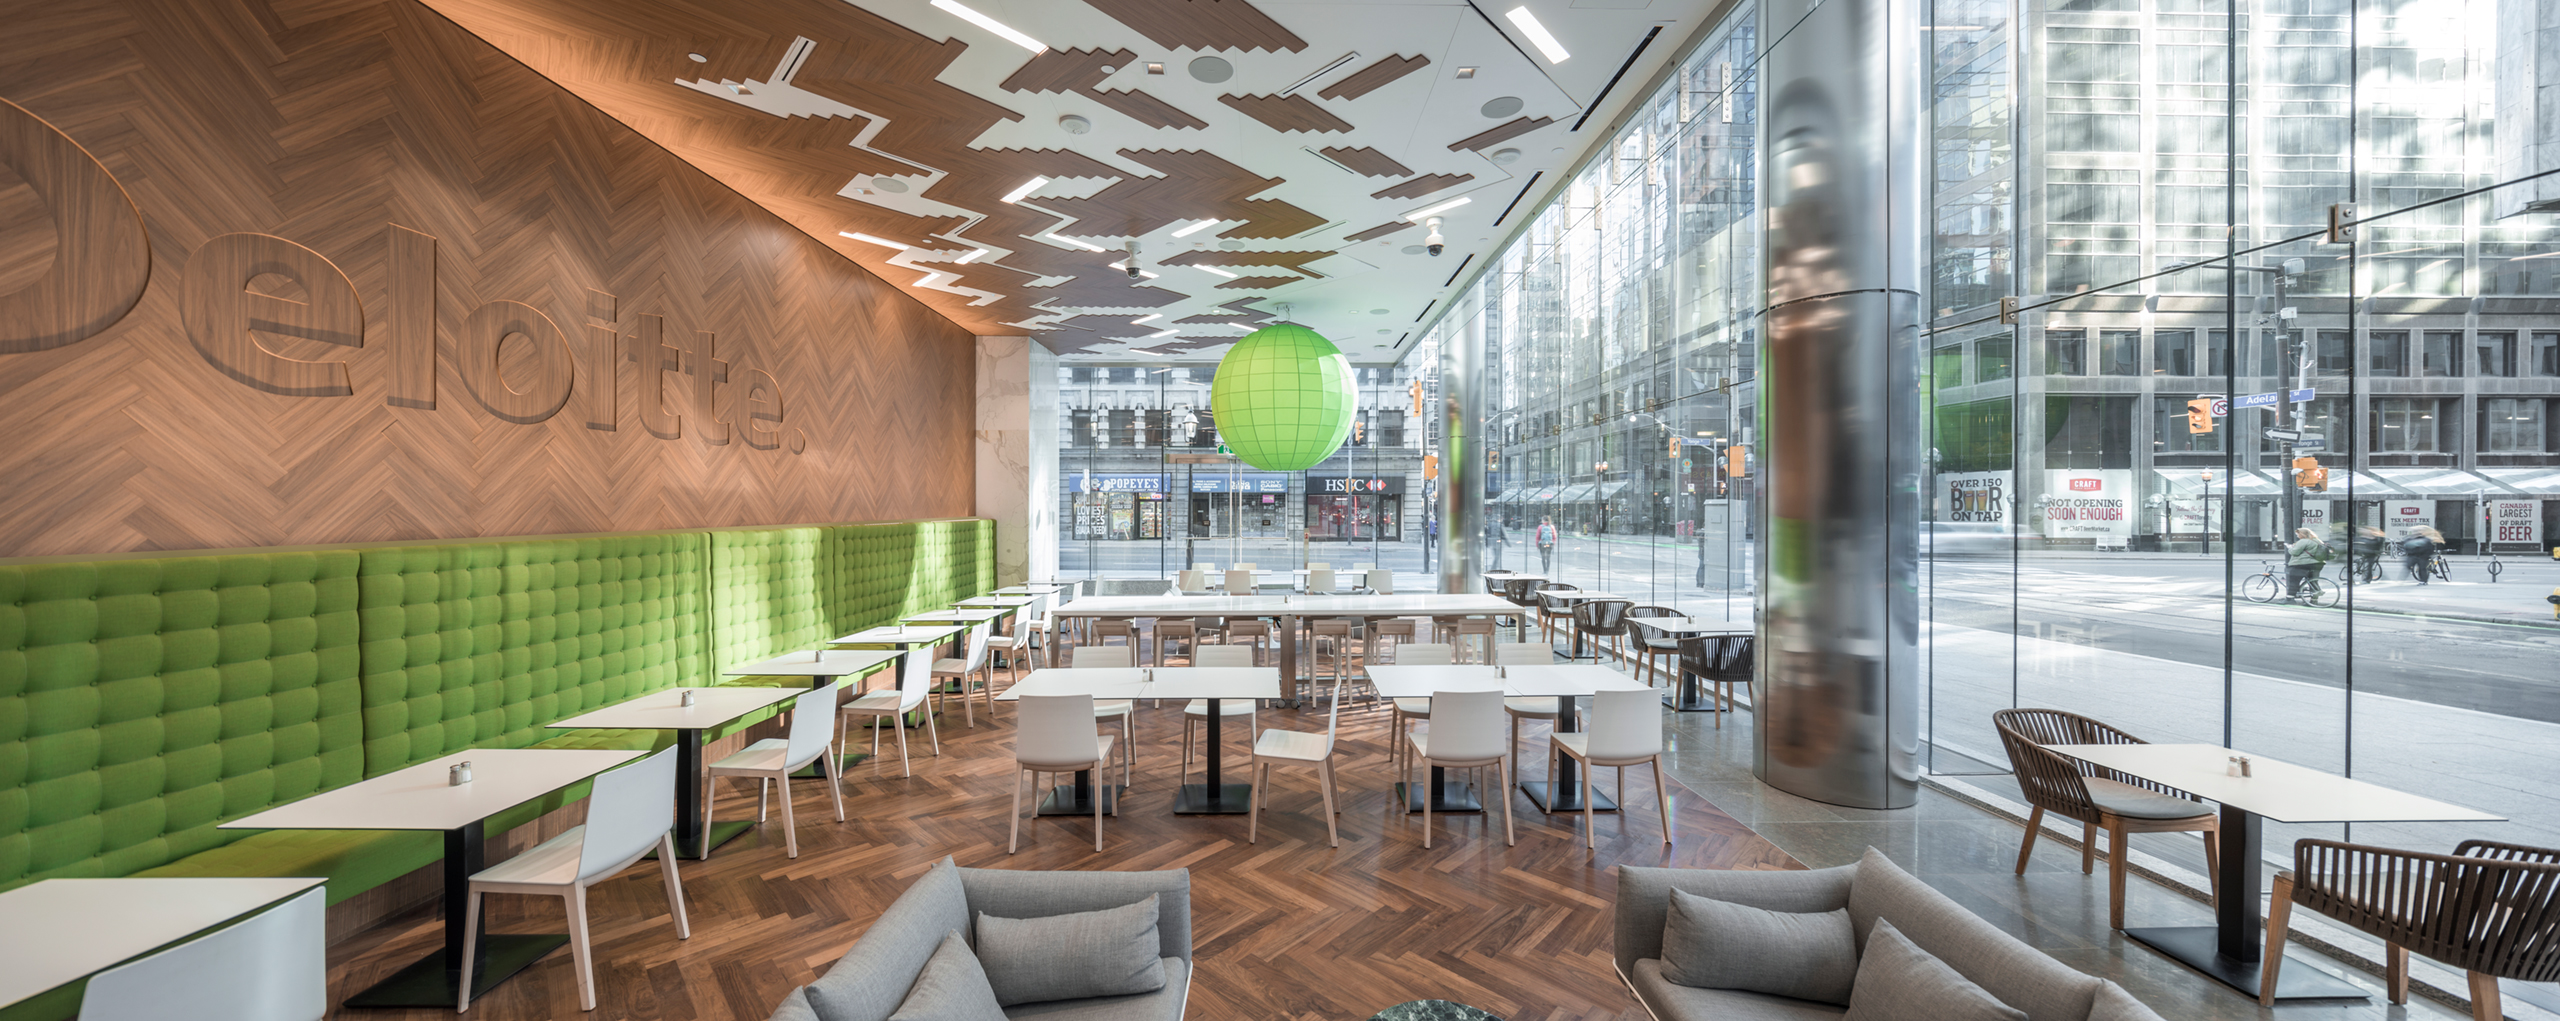 deloitte headquarters mulvey banani lighting design